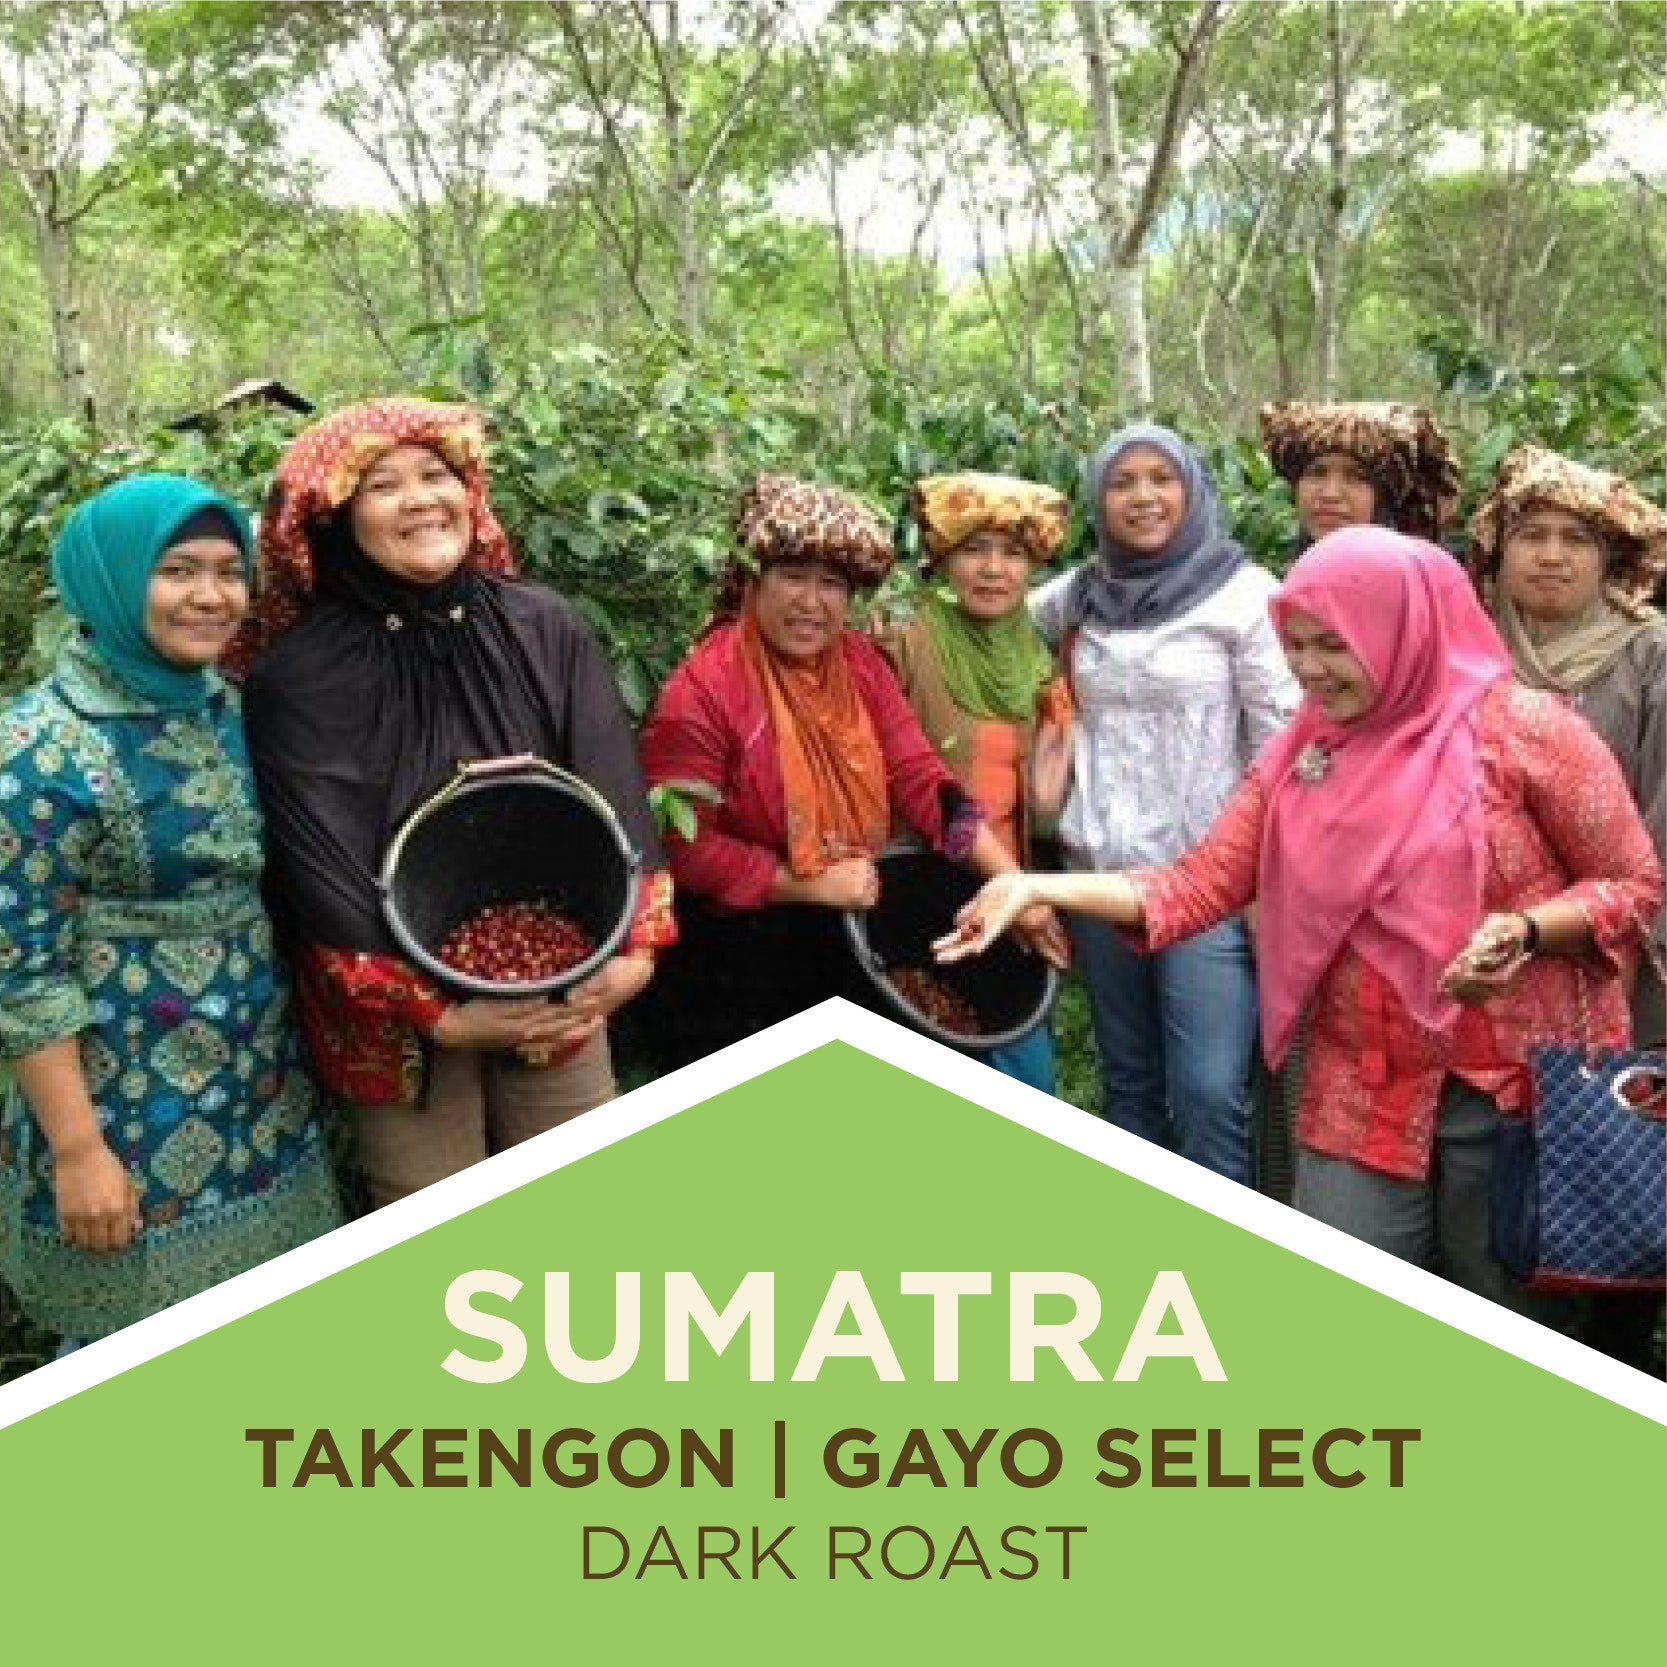 Sumatra | Takengon Gayo Select - Dark Roast